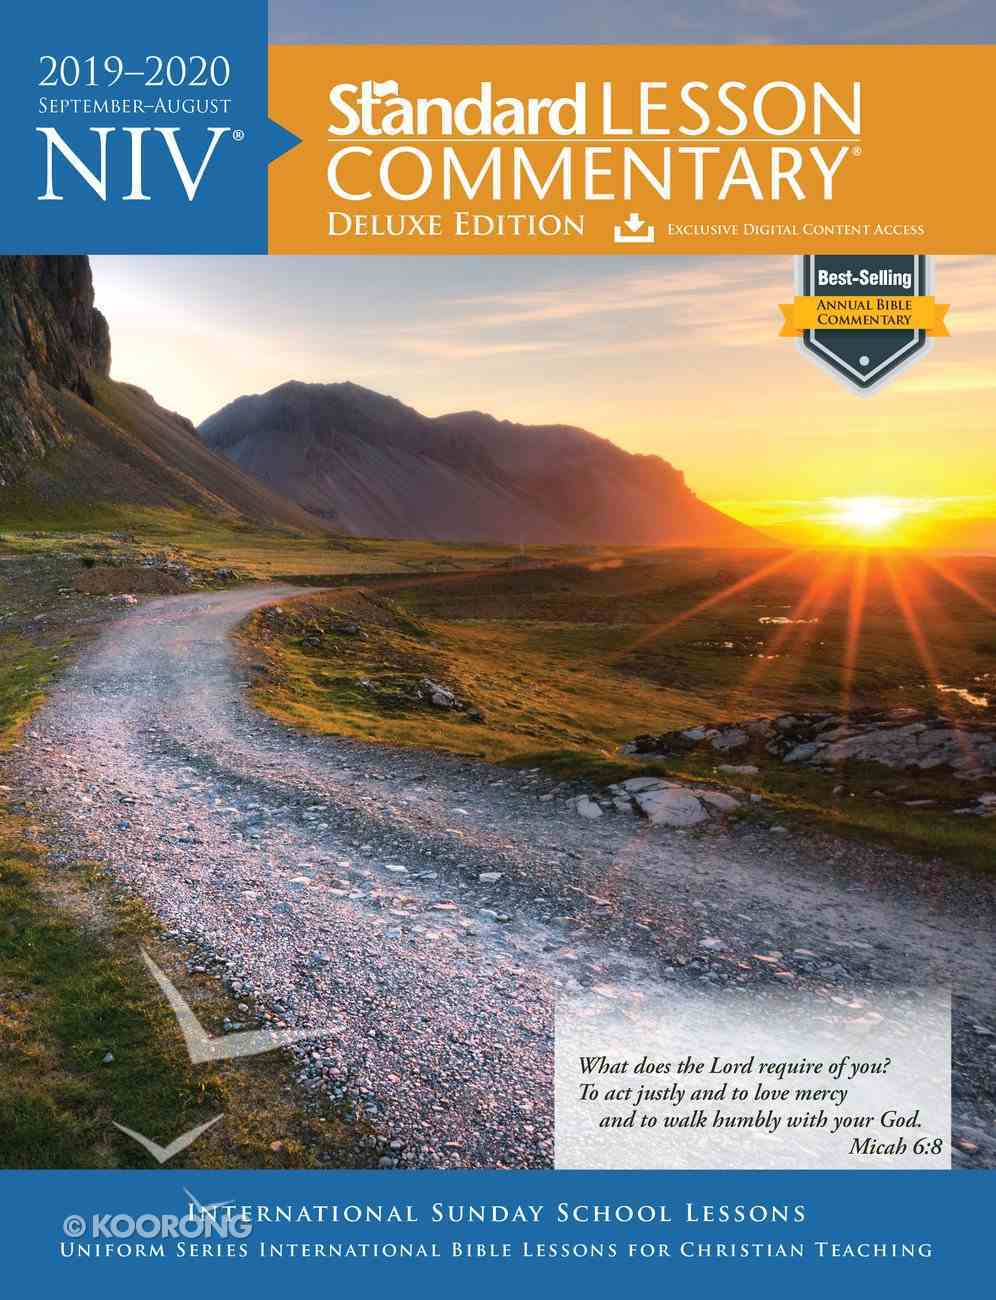 NIV Standard Lesson Commentary Deluxe Edition 2019-2020 Paperback